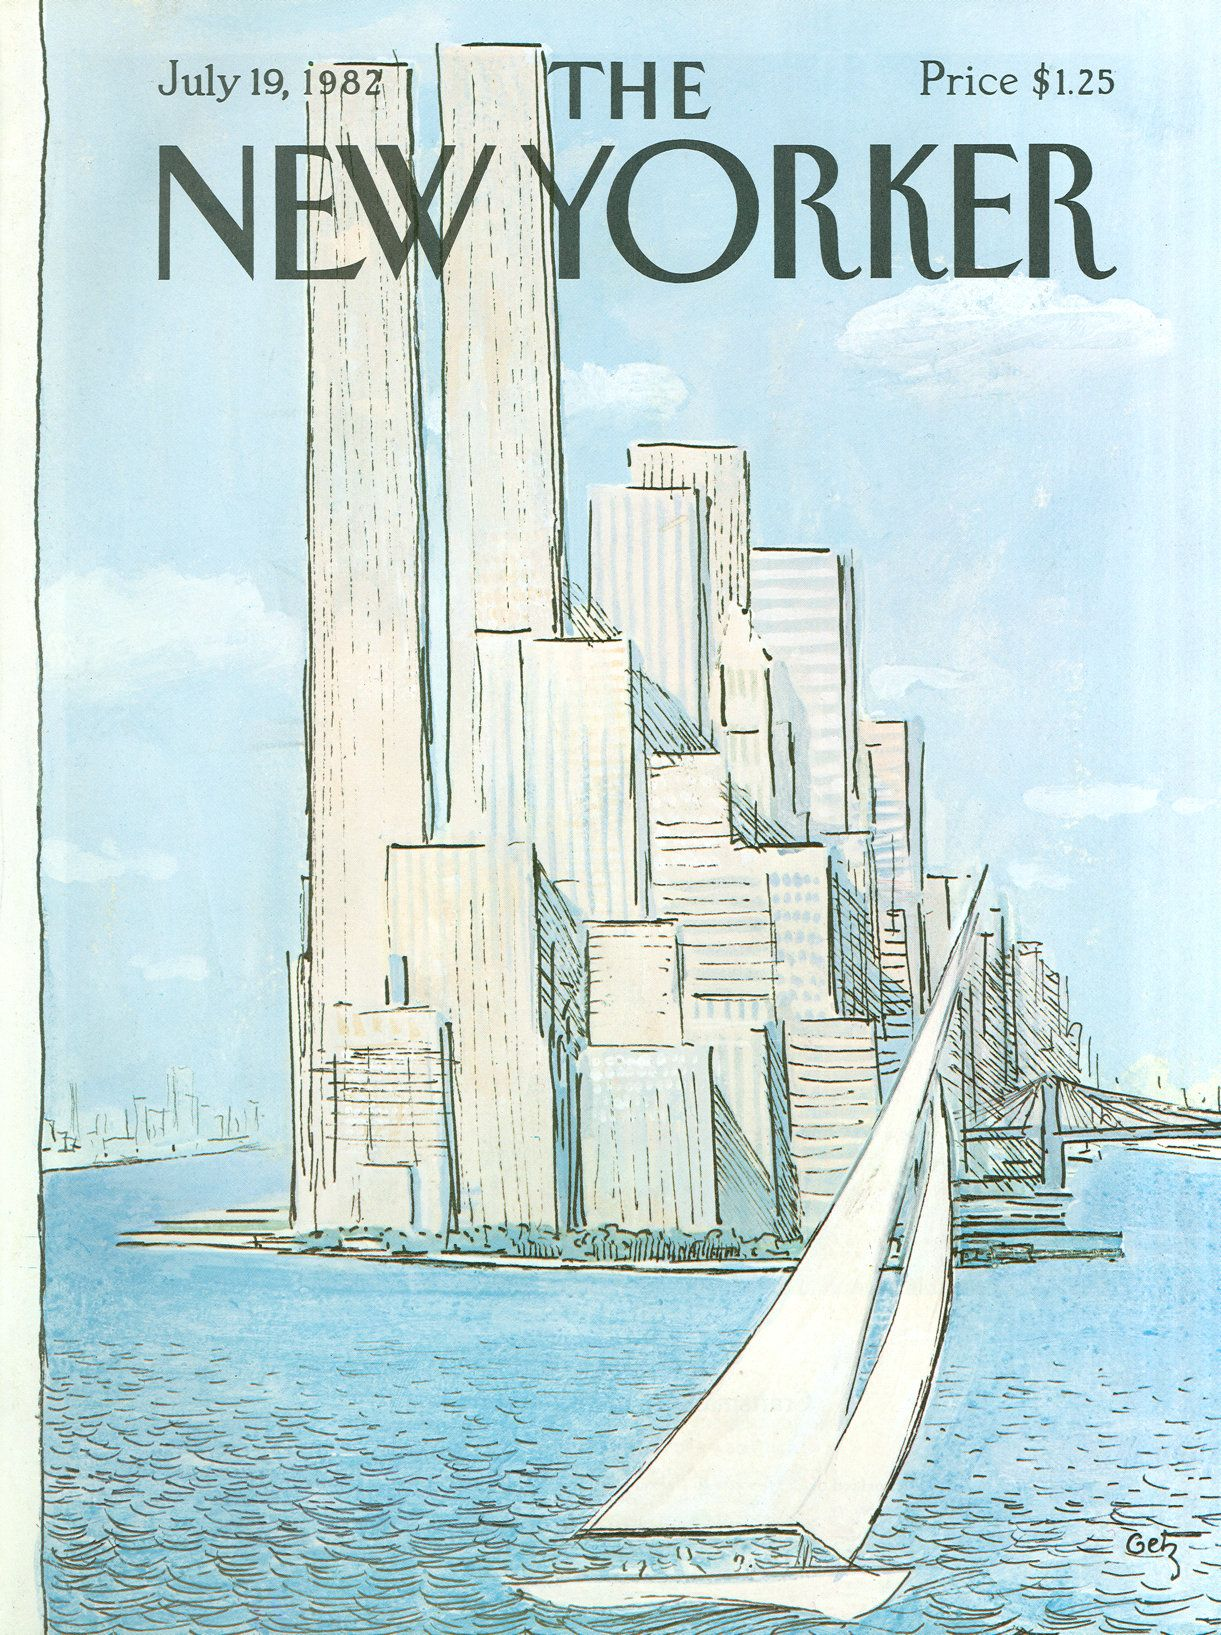 The New Yorker - Monday, July 19, 1982 - Issue # 2996 - Vol. 58 - N° 22 - Cover by : Arthur Getz